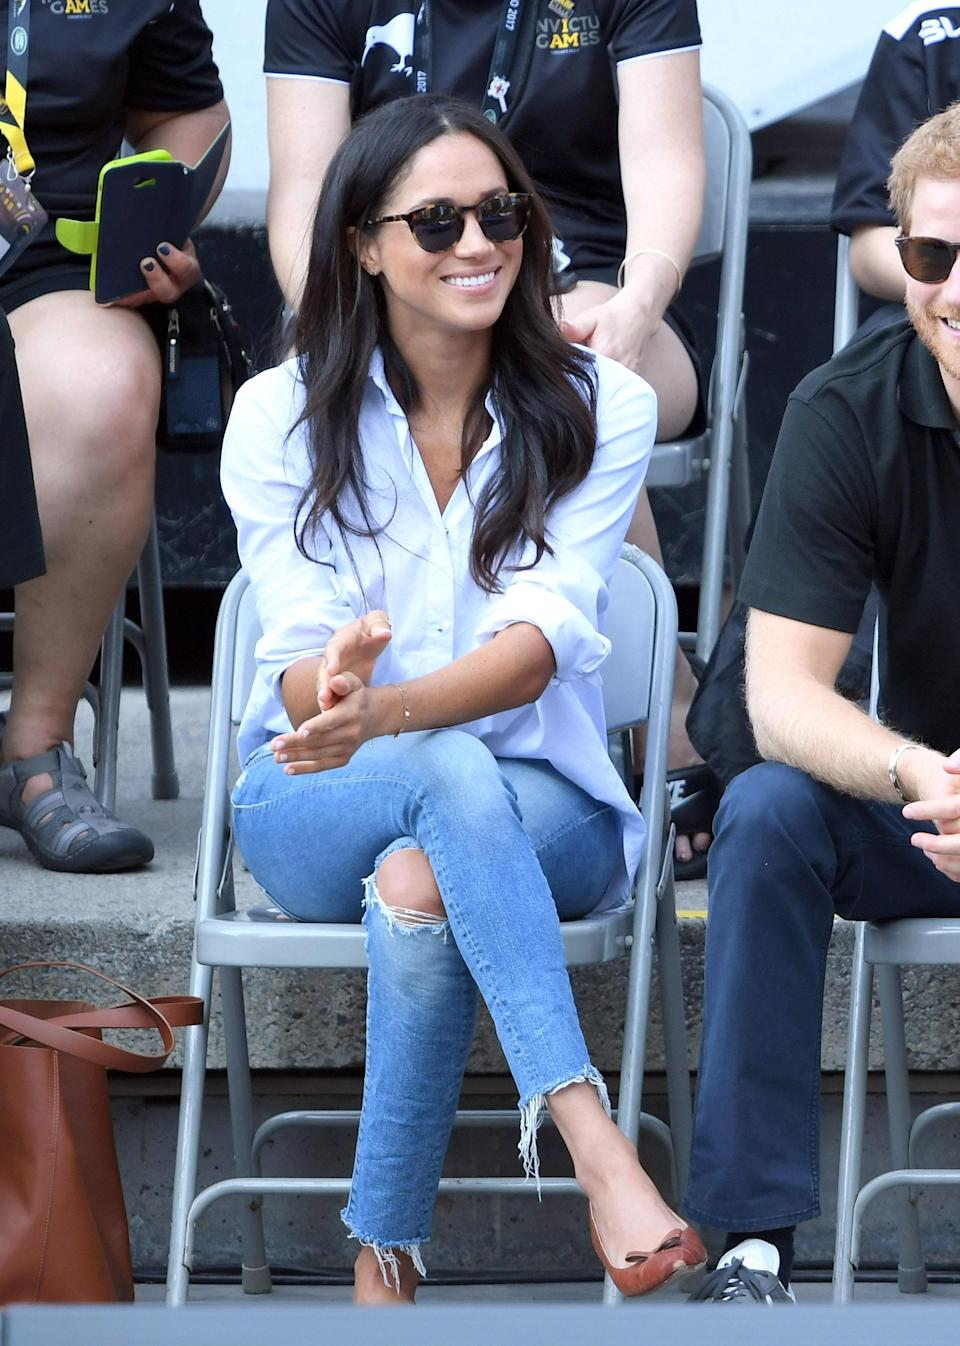 The first time Meghan Markle wore jeans from Mother, at the 2017 Invictus Games